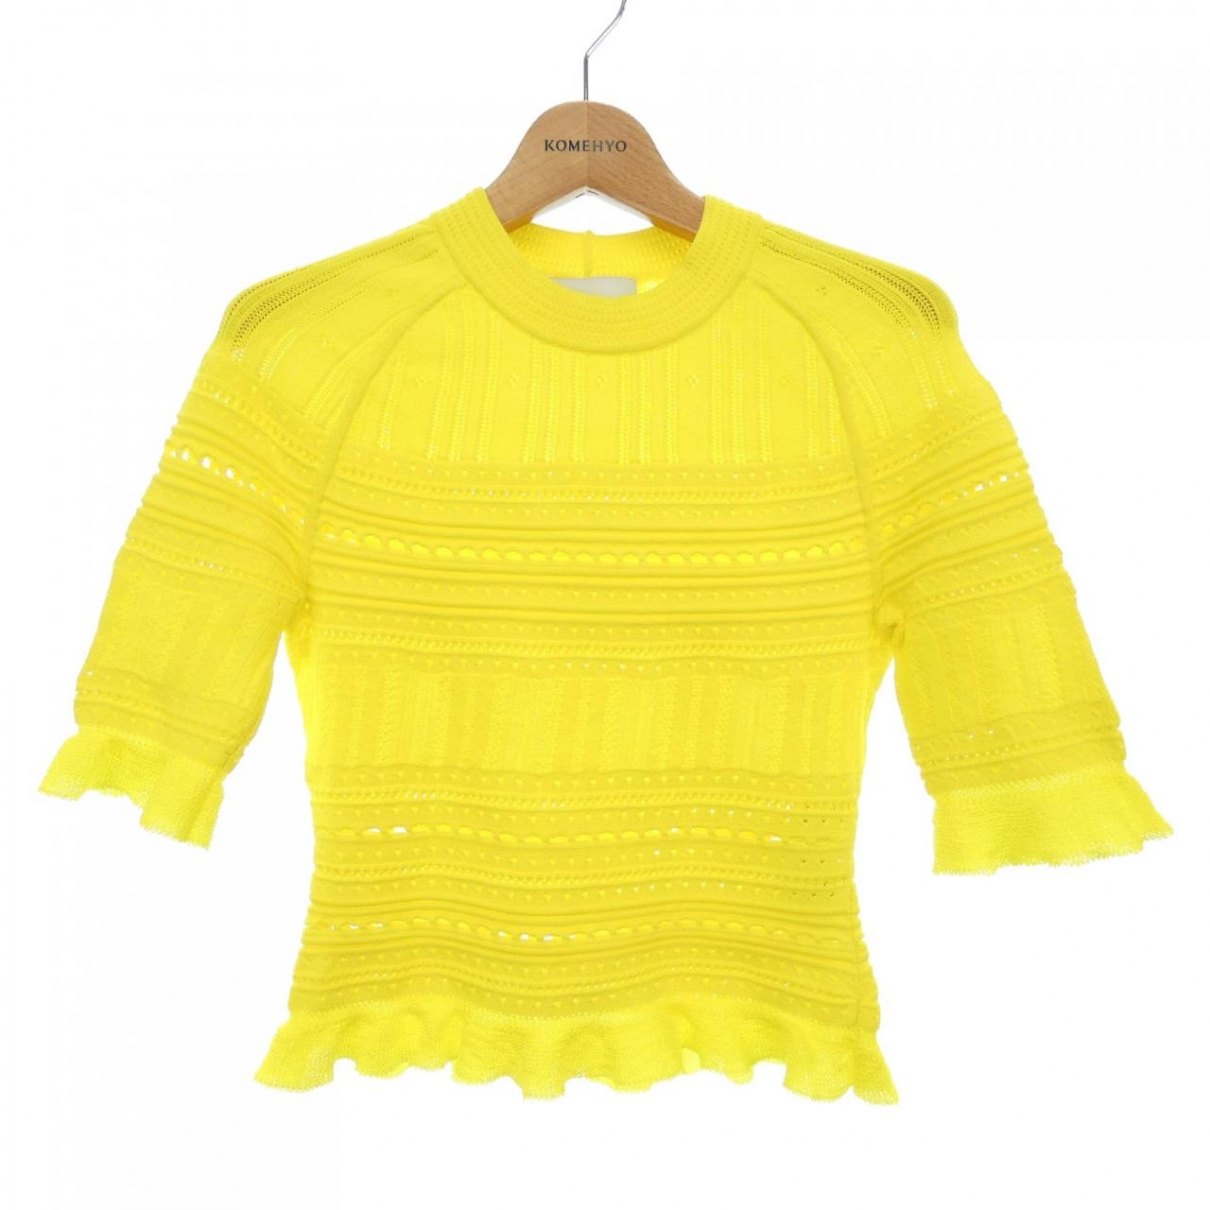 3.1 Phillip Lim \N Yellow  top for Women XS International